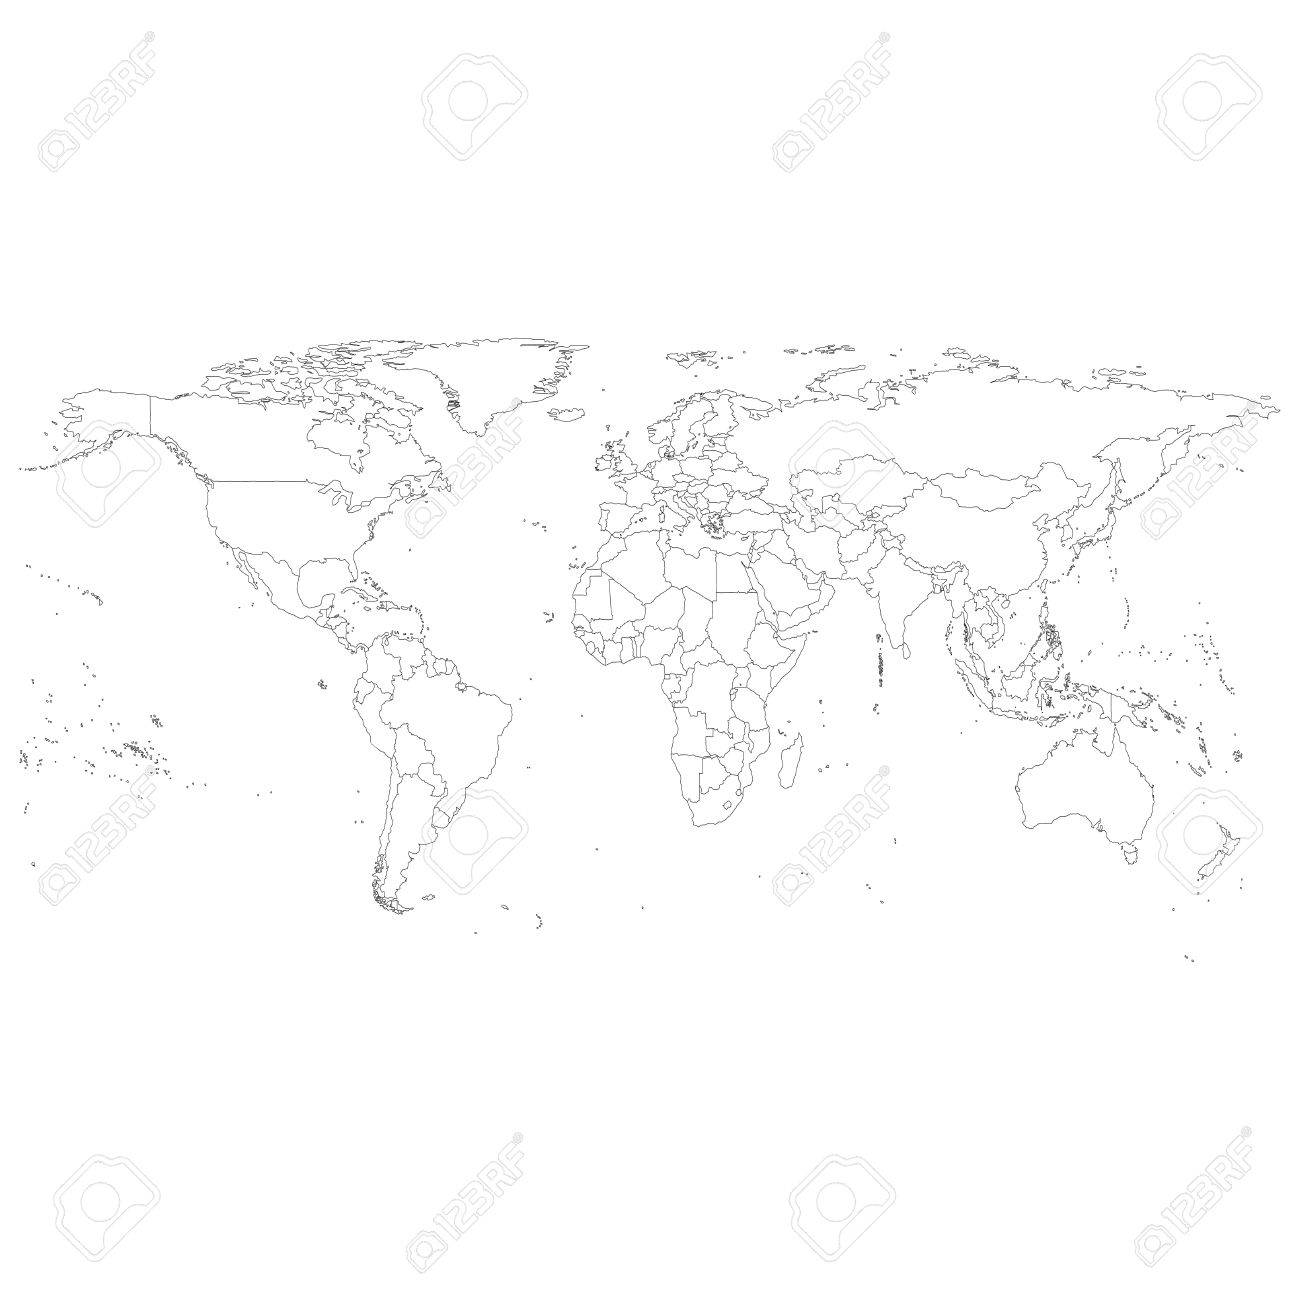 Gray political world map vector light design vector illustration gray political world map vector light design vector illustration stock vector 27847755 gumiabroncs Image collections